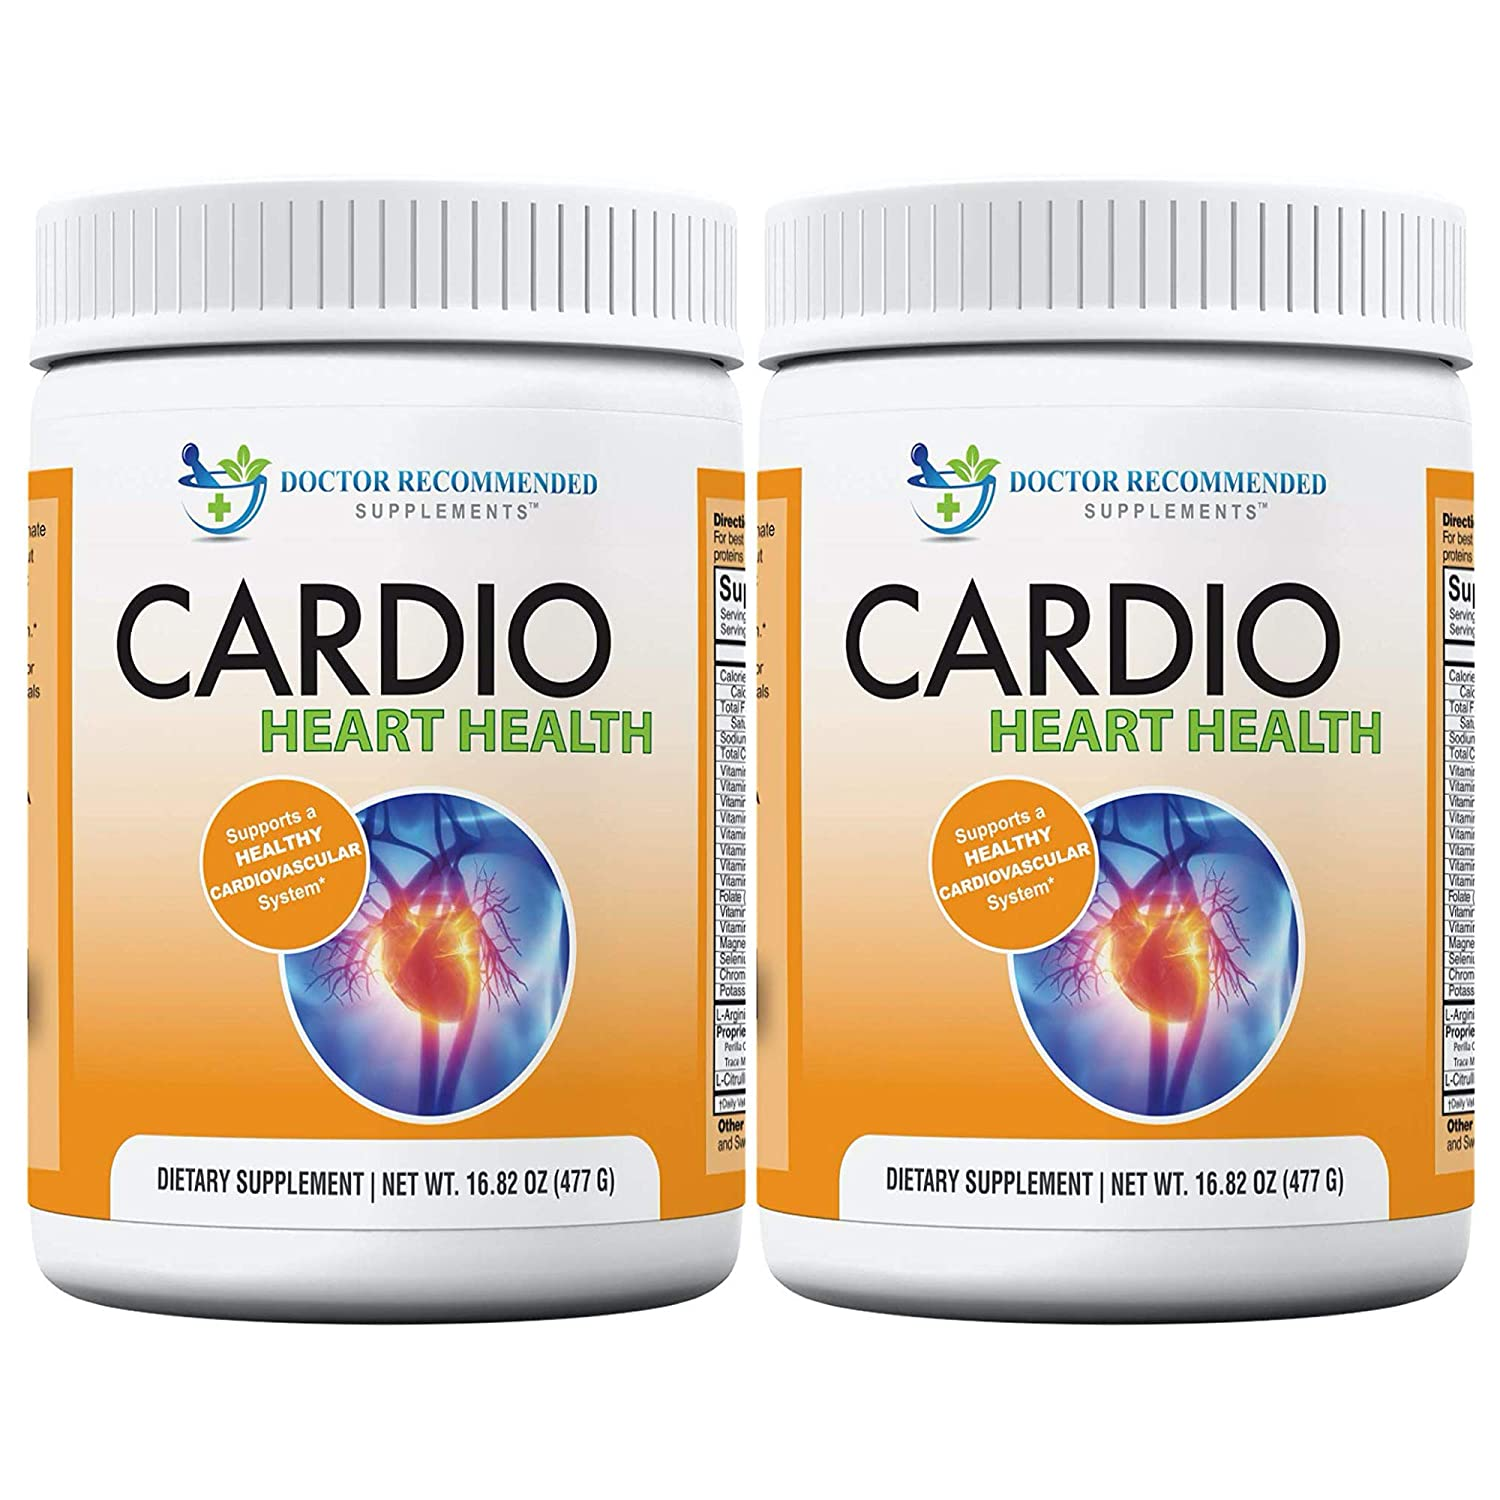 Cardio Heart Health-L-Arginine Powder Supplement-5000mg Plus 1000mg L-Citrulline-with Minerals, and Antioxidants Vitamin C E-Total Cardiovascular System Health-Formulated by Real Doctors 2 Pack